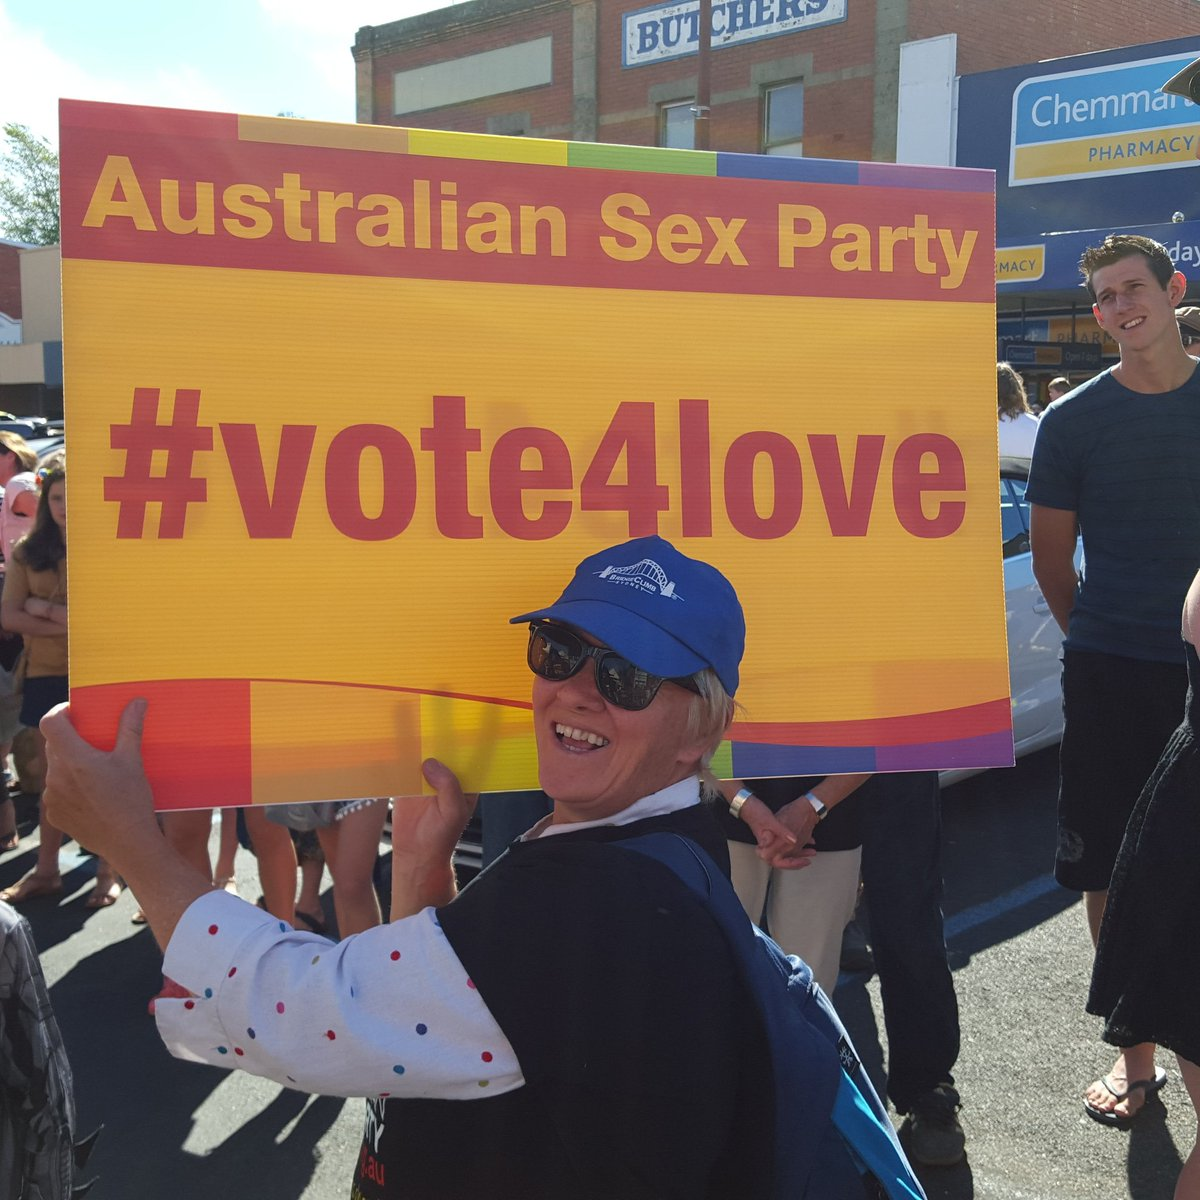 RT : Kudos the #CWA voting in support of #MarriageEquality. #auspol #ausvotes  #Election2016